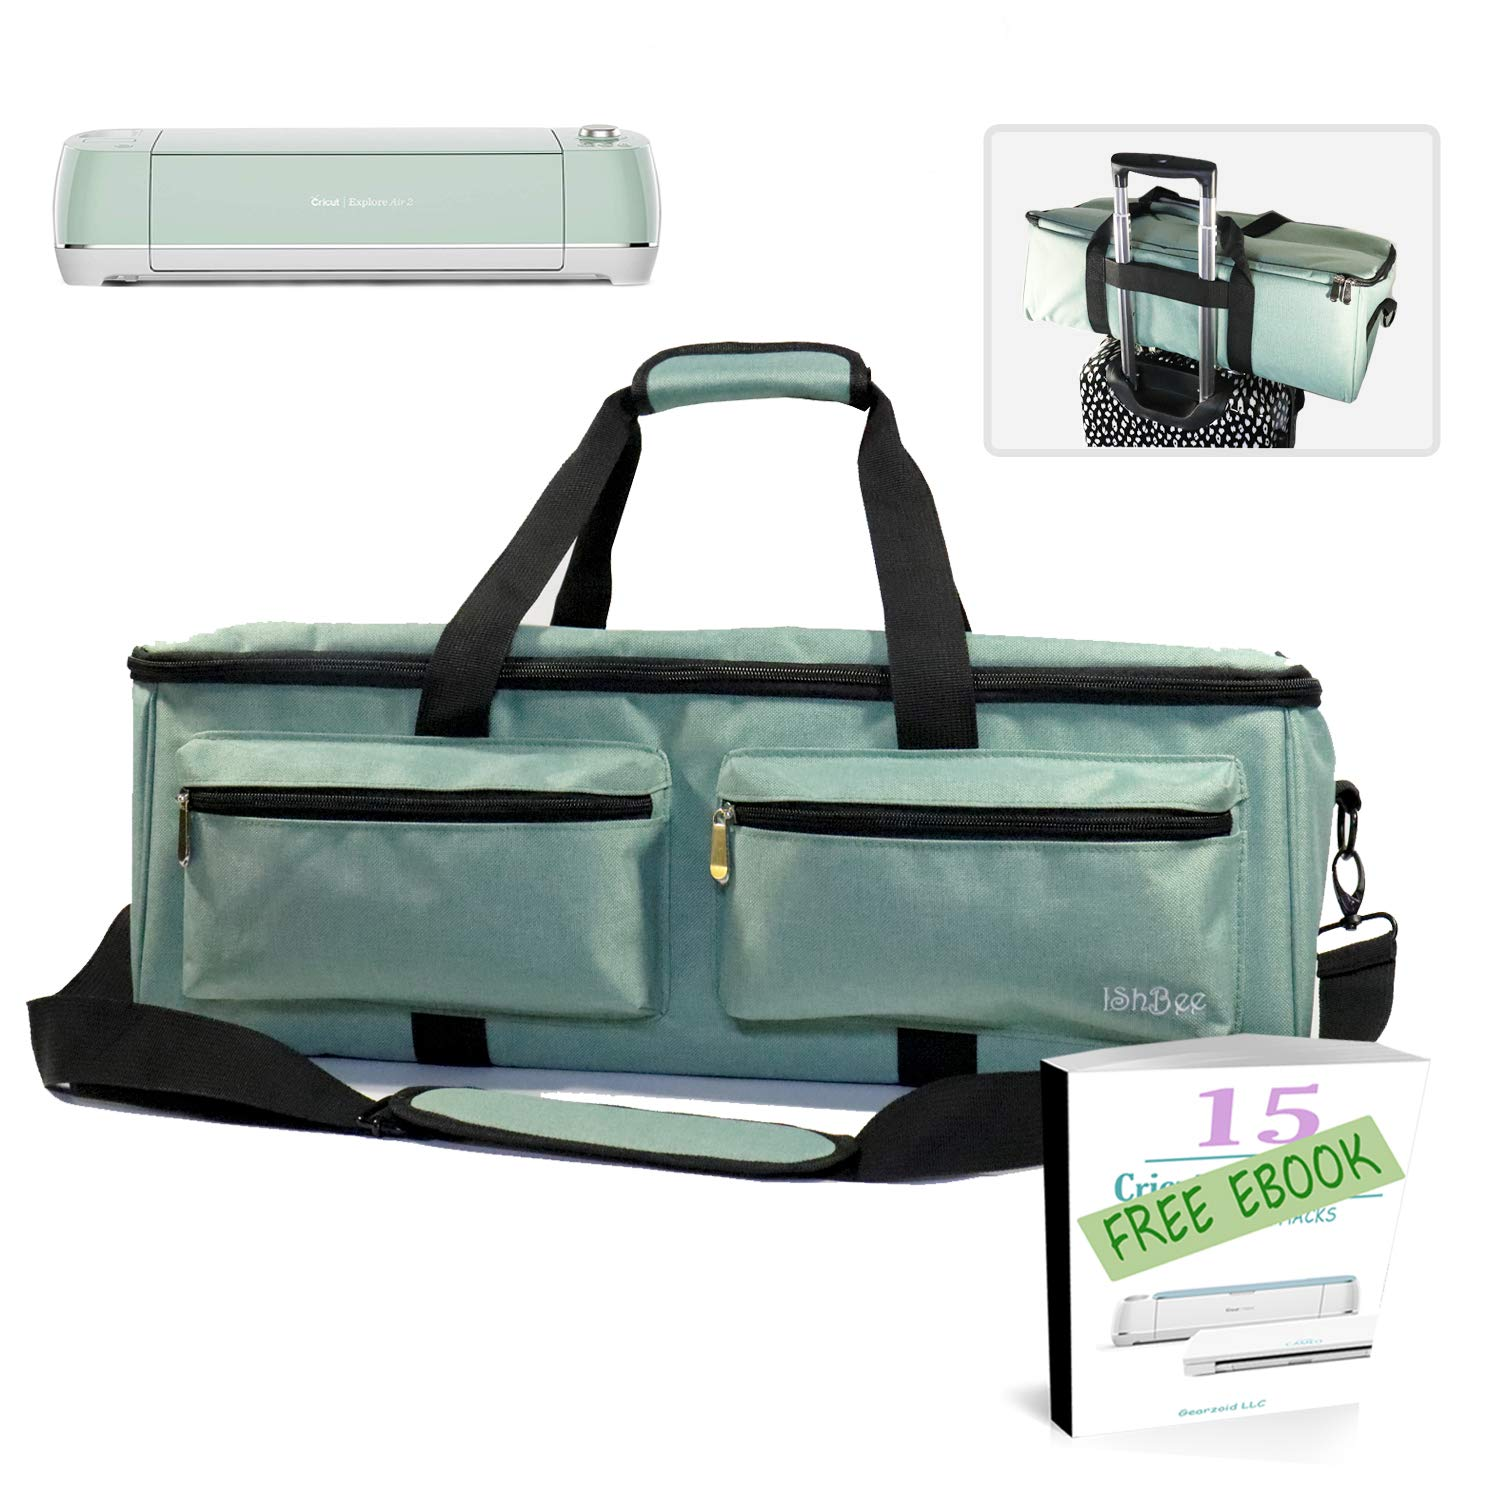 ISHBEE Mint Cricut Carrying Case Nylon Accessories Bag with Ebook|Heavy-Duty Zippers| 5mm Protective padding Compatible with Cricut Maker, Cricut Explore Air, Cricut Explore Air 2 & Silhouette Cameo 3